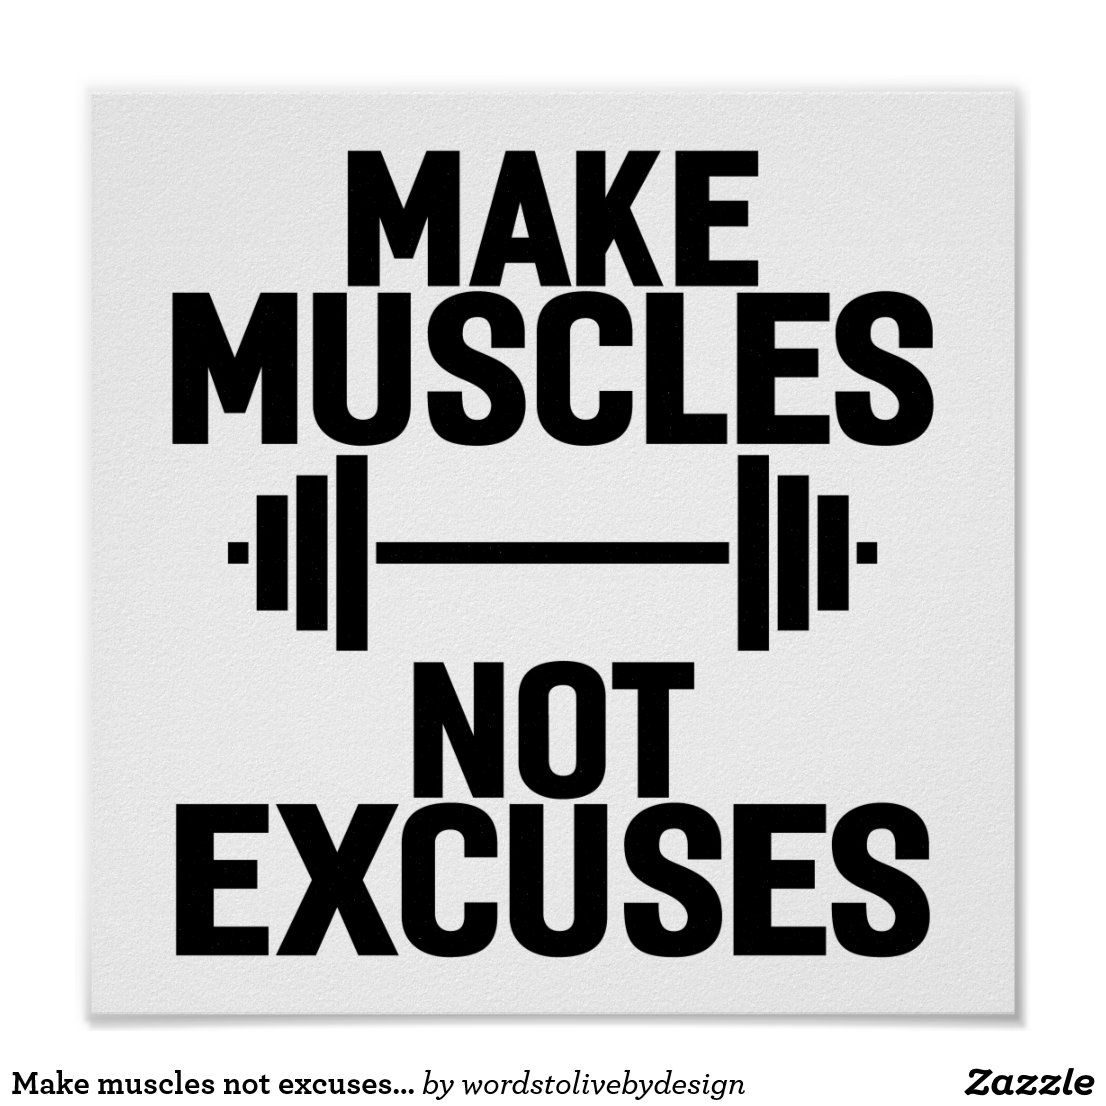 Make Muscles Not Excuses Gym Motivational Poster Zazzle Com Motivational Quotes For Working Out Gym Motivation Quotes Gym Motivation Wallpaper